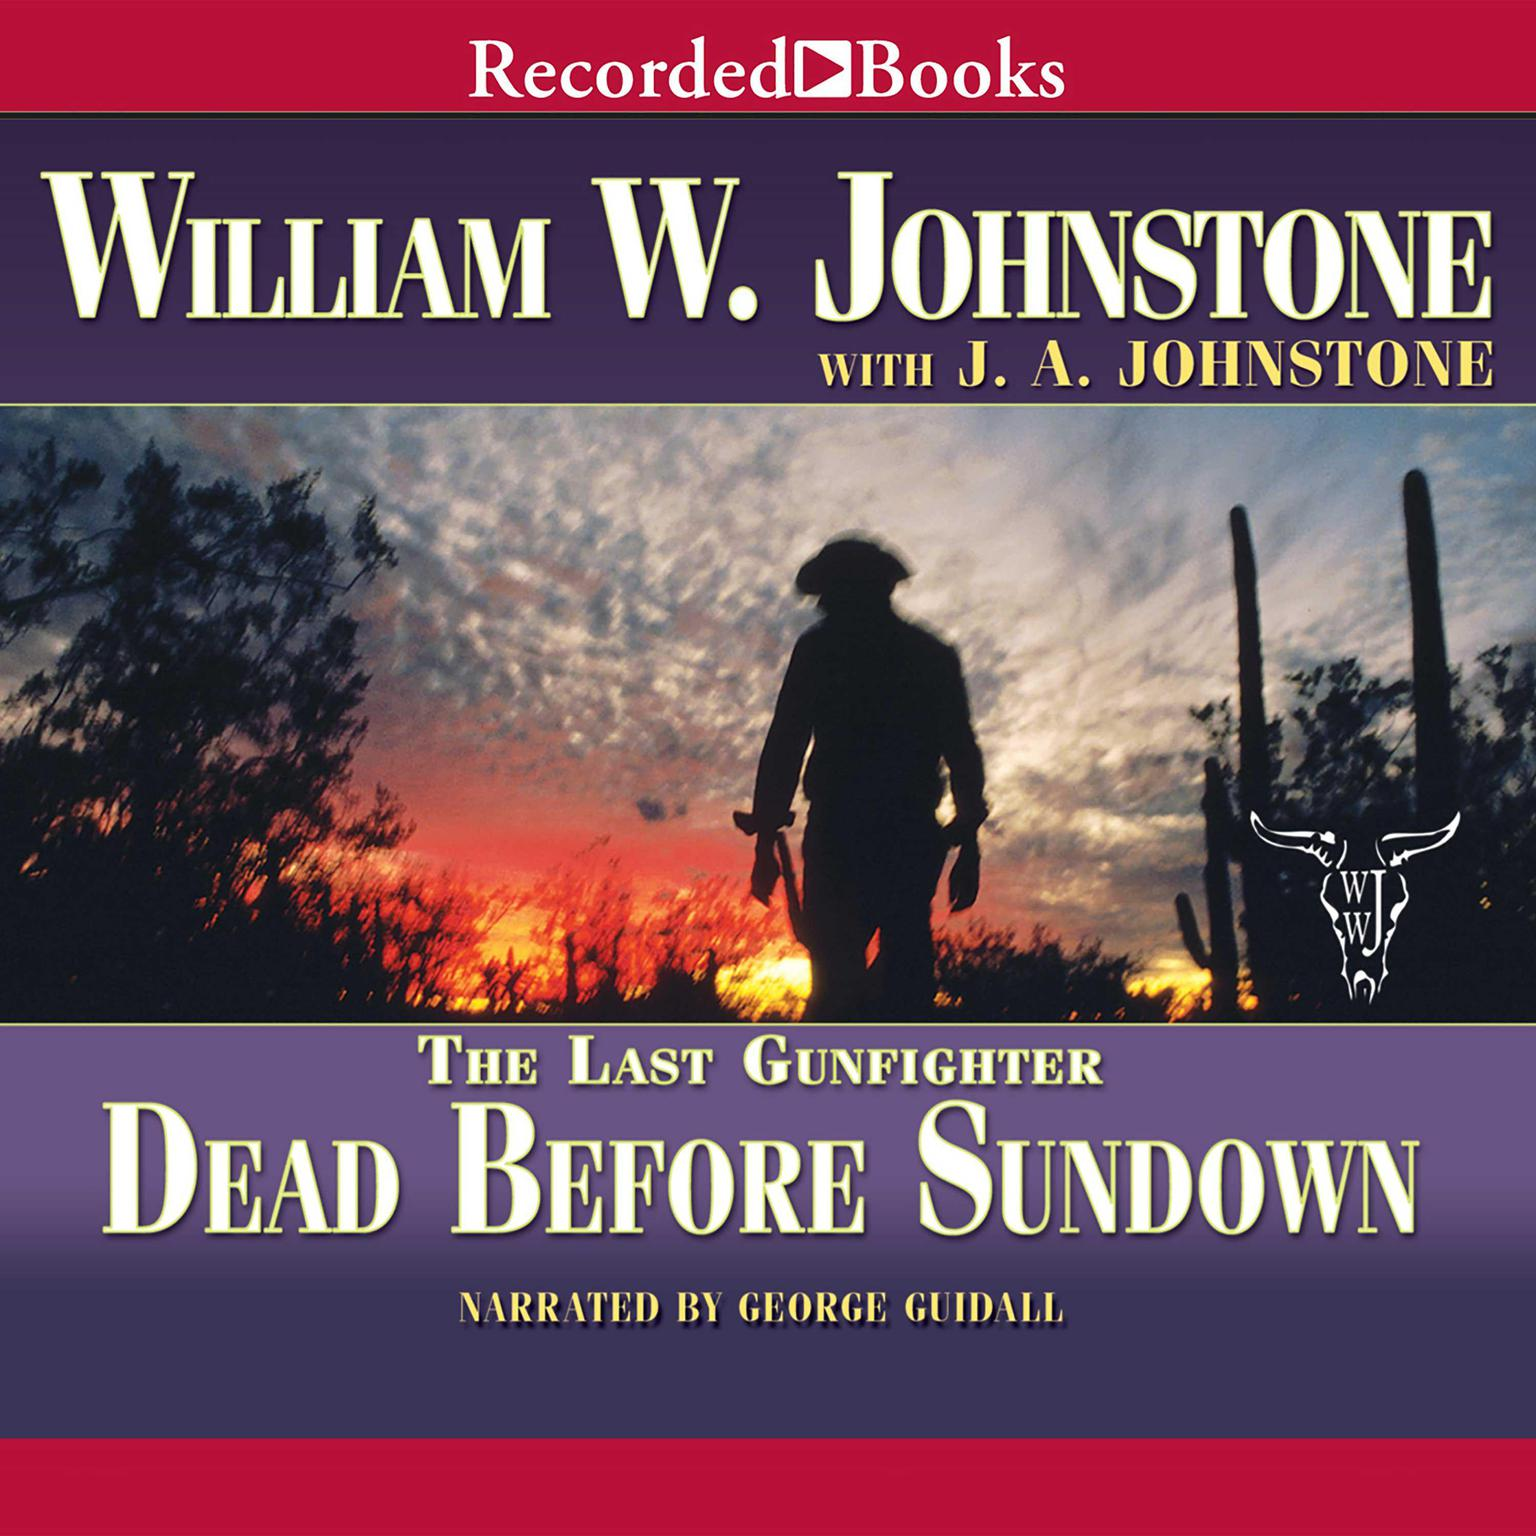 Printable Dead before Sundown Audiobook Cover Art